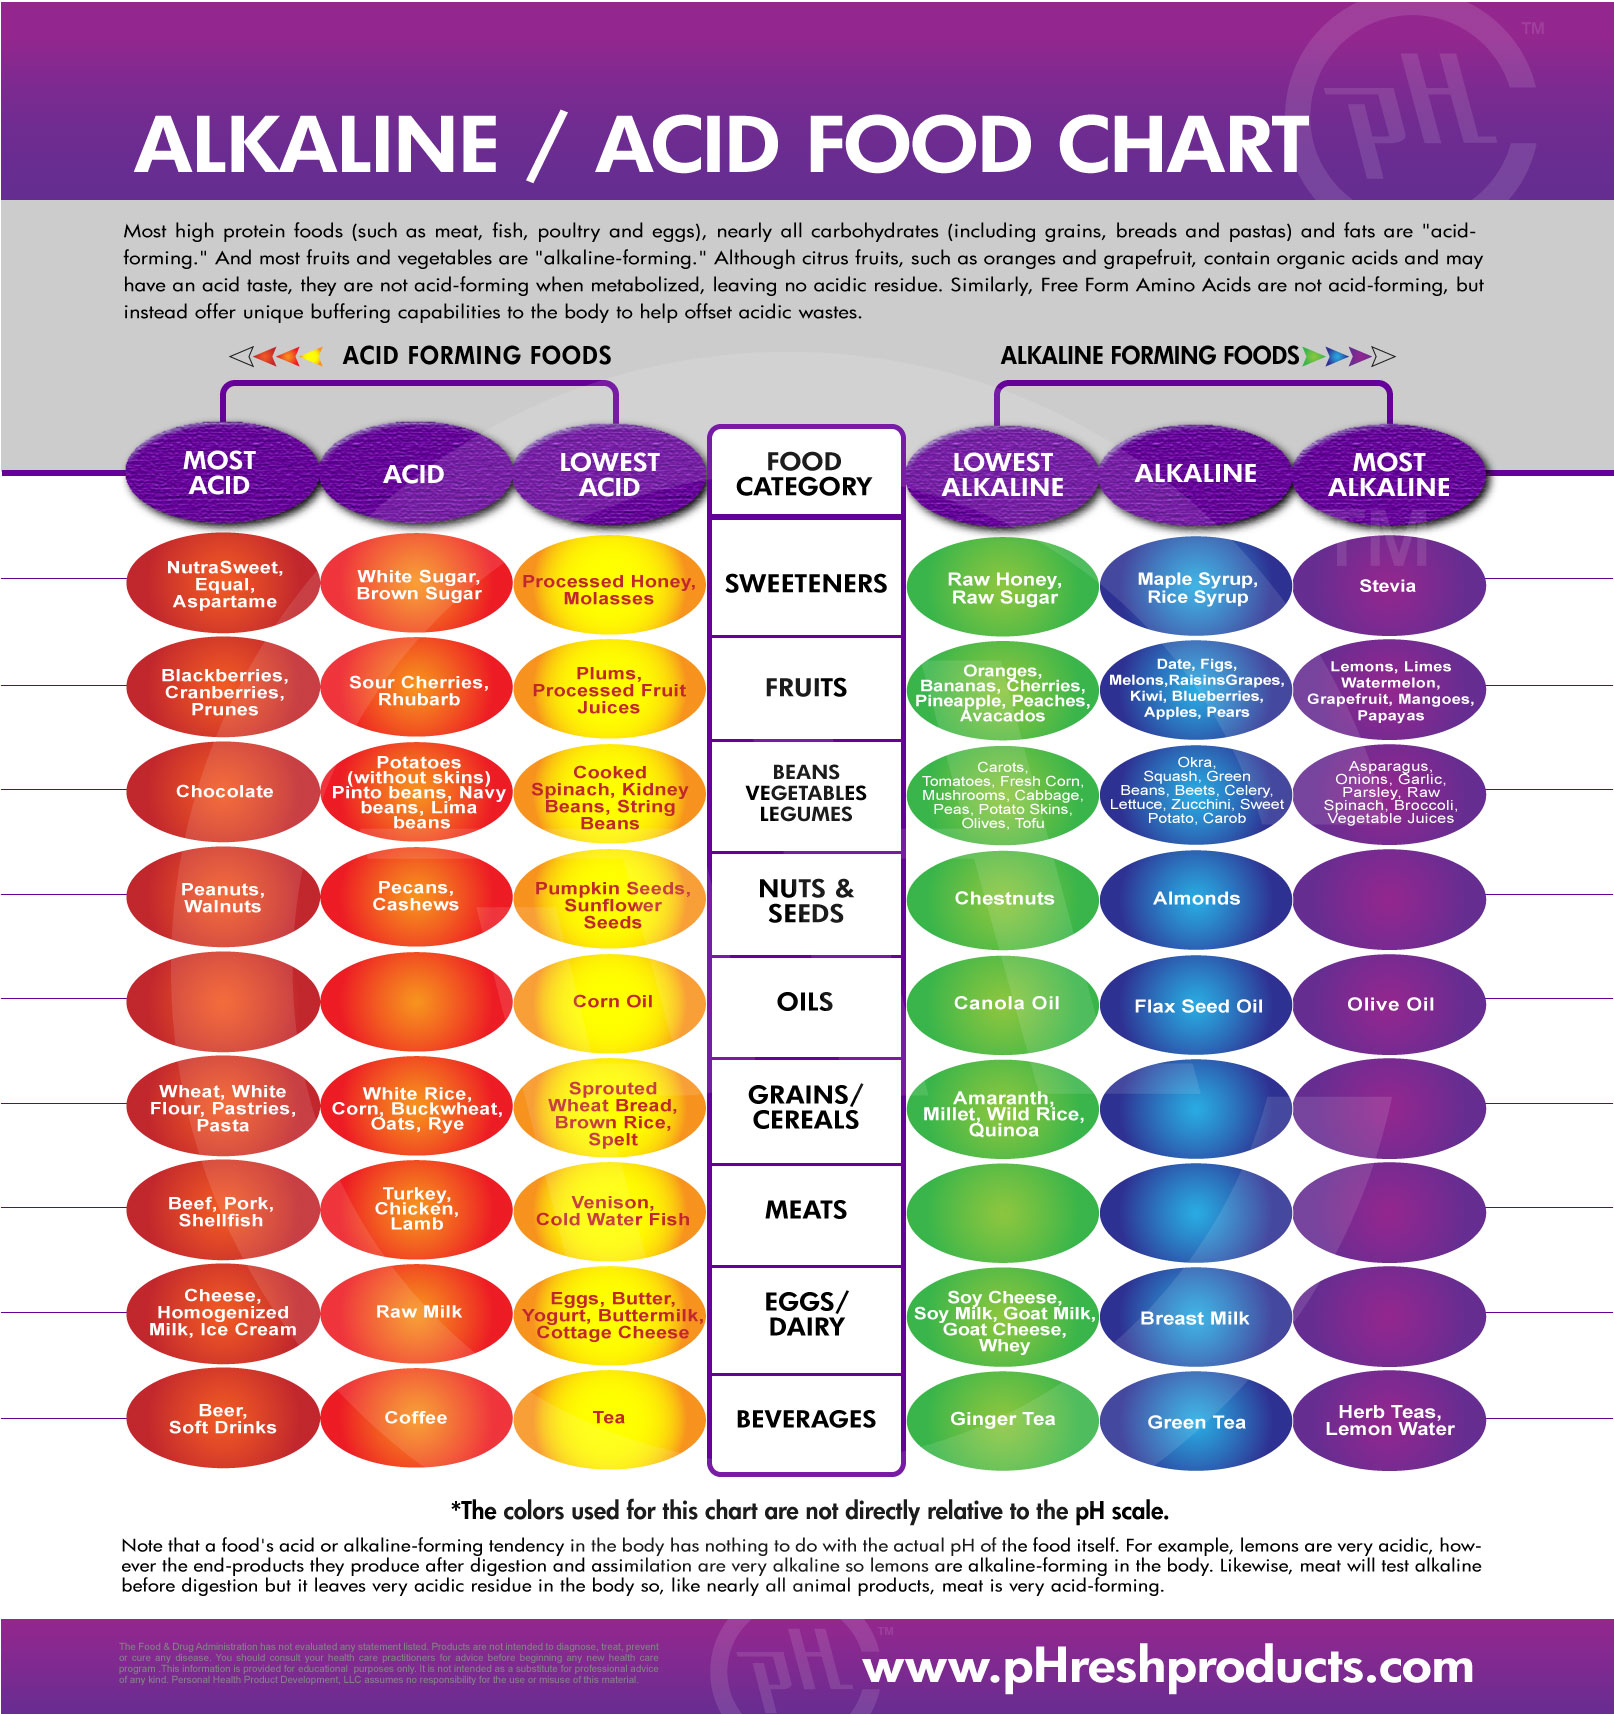 alkaline food chart Eczema: Types, Symptoms, Causes and Treatment